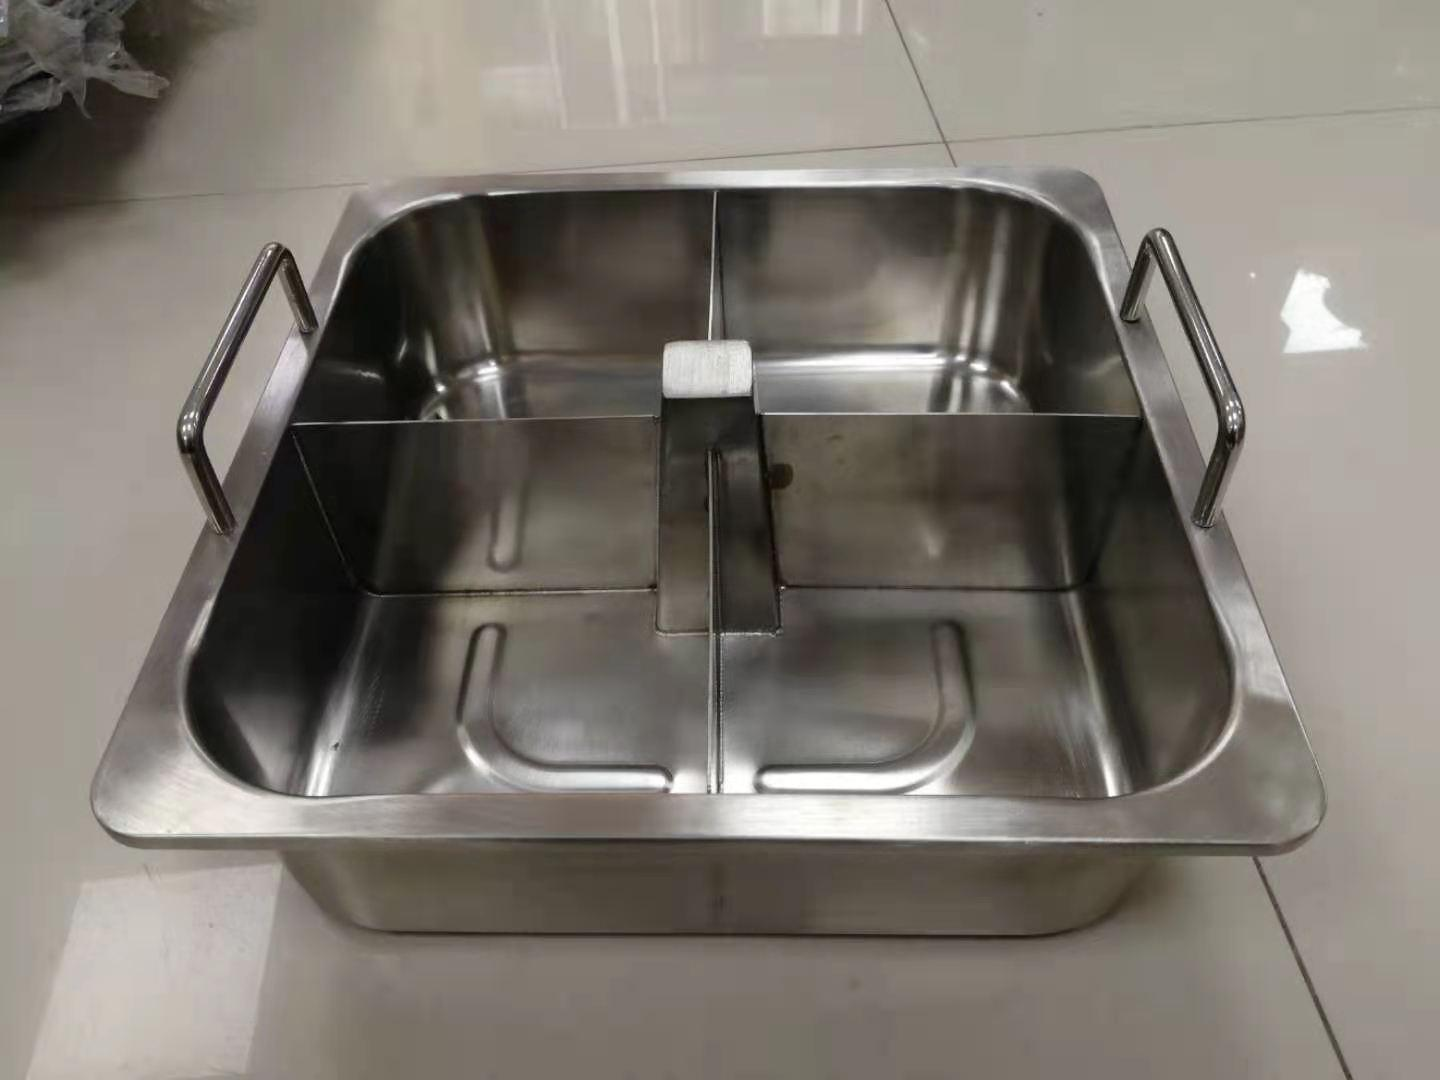 Kitchenerware s/s Pan with Center Column & Divider into 4 Grids Hot pot  1